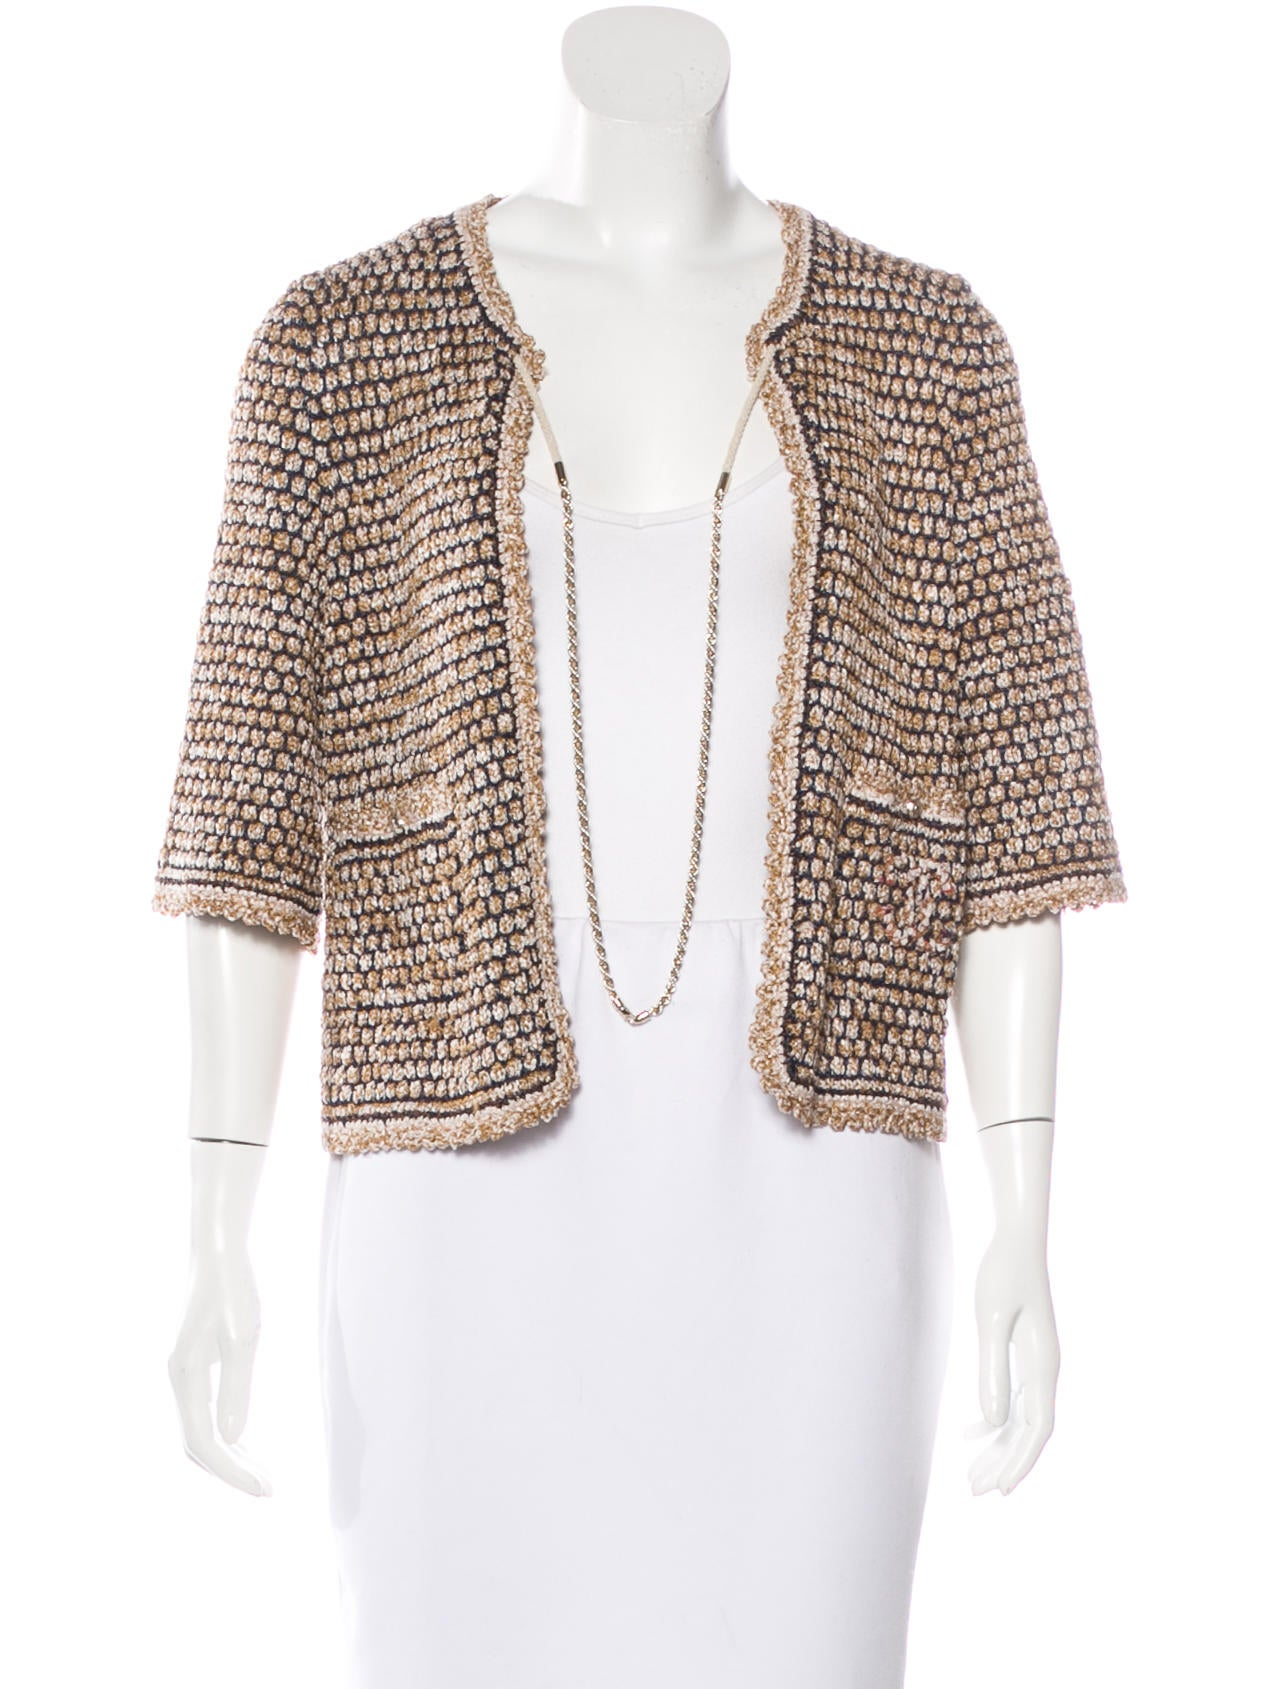 Chanel Embellished Knit Cardigan - Clothing - CHA158312 The RealReal